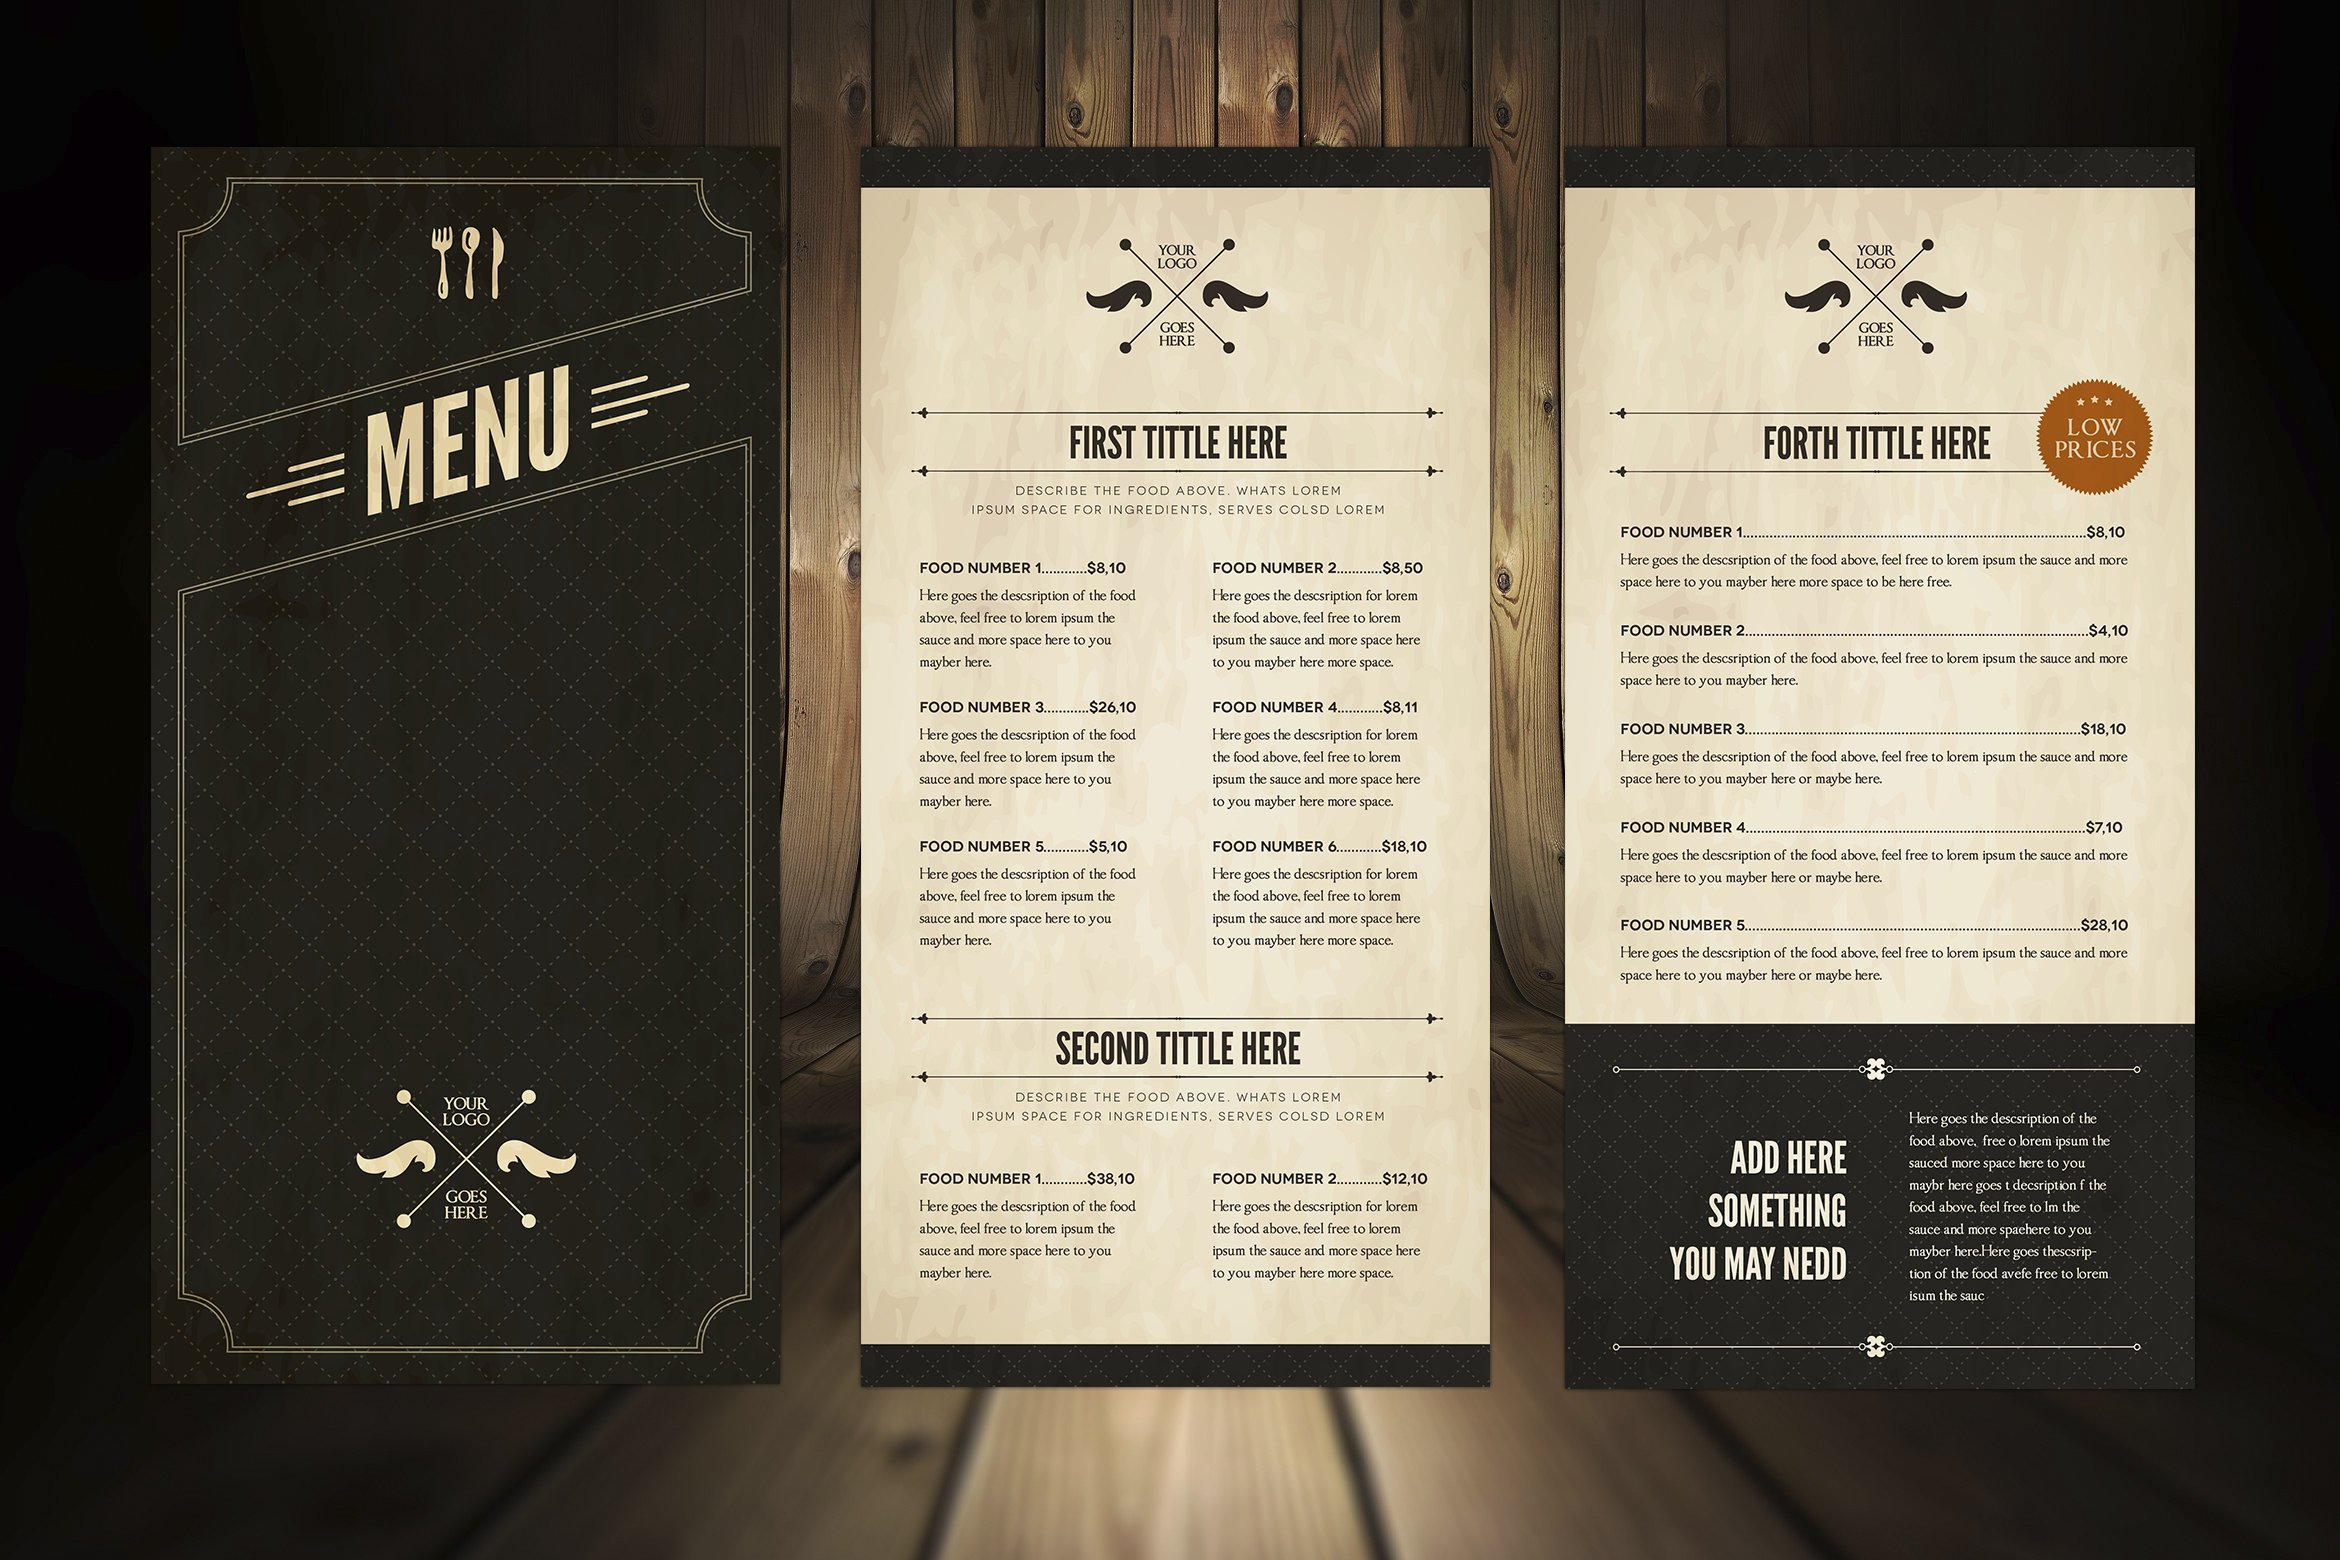 Next Cafe Miami Menu